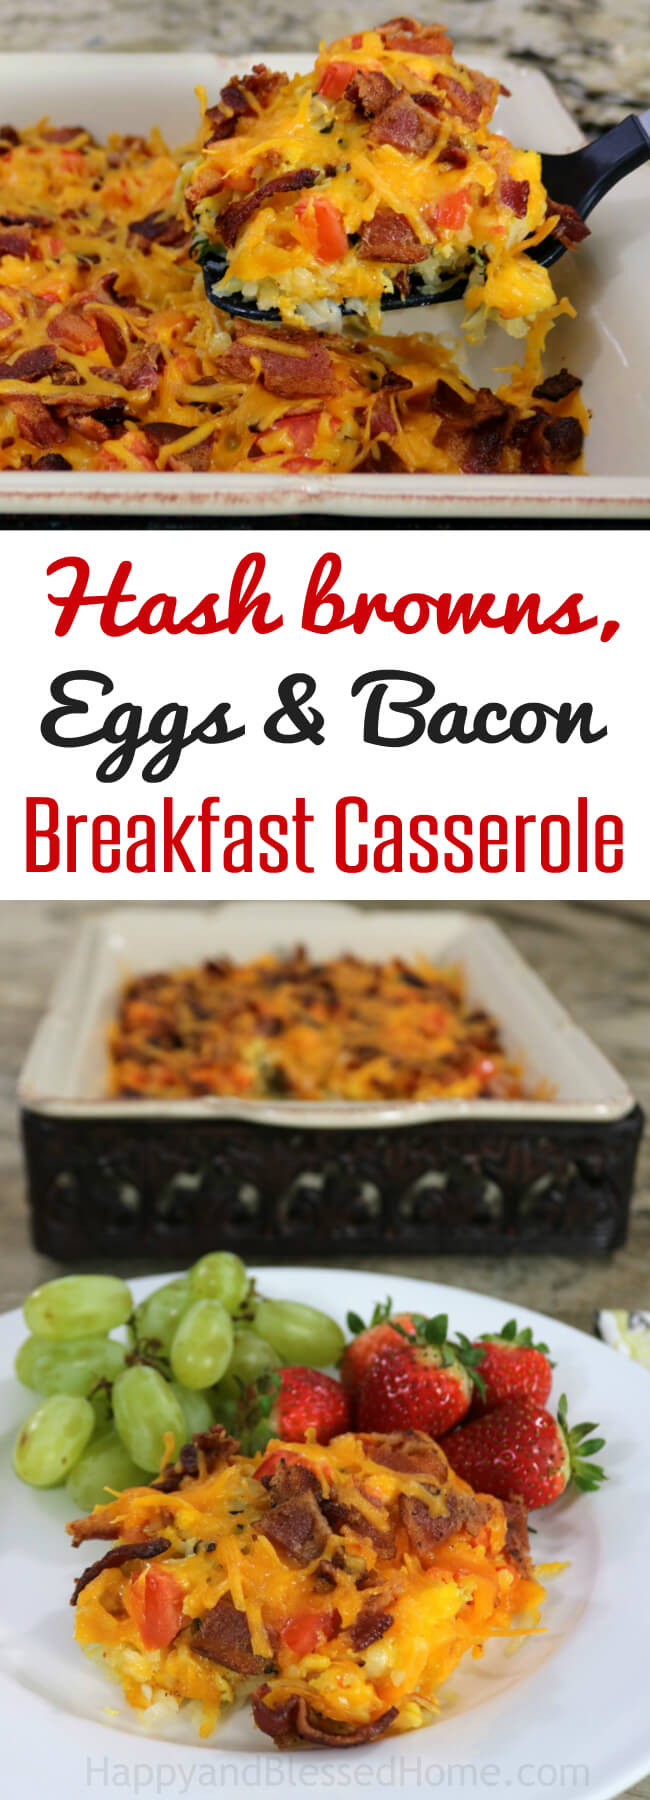 Easy Breakfast for a Crowd - Hash browns, Eggs and Bacon Breakfast Casserole